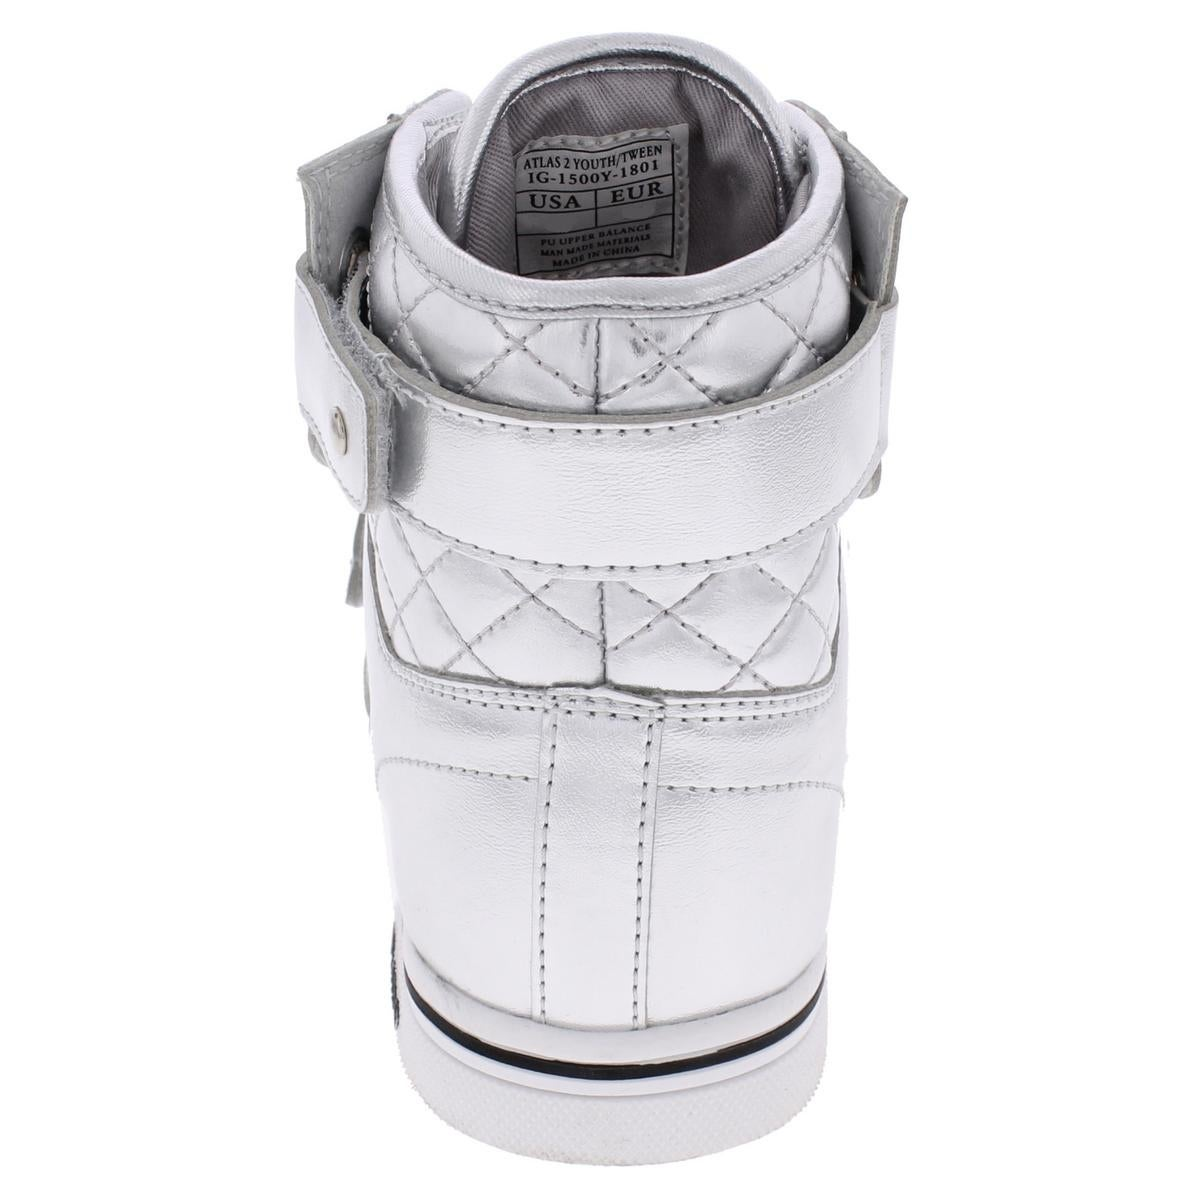 de8ba60c55aa Shop Vlado Boys Atlas II Fashion Sneakers Quilted High Top - Free Shipping  On Orders Over  45 - Overstock - 20546079